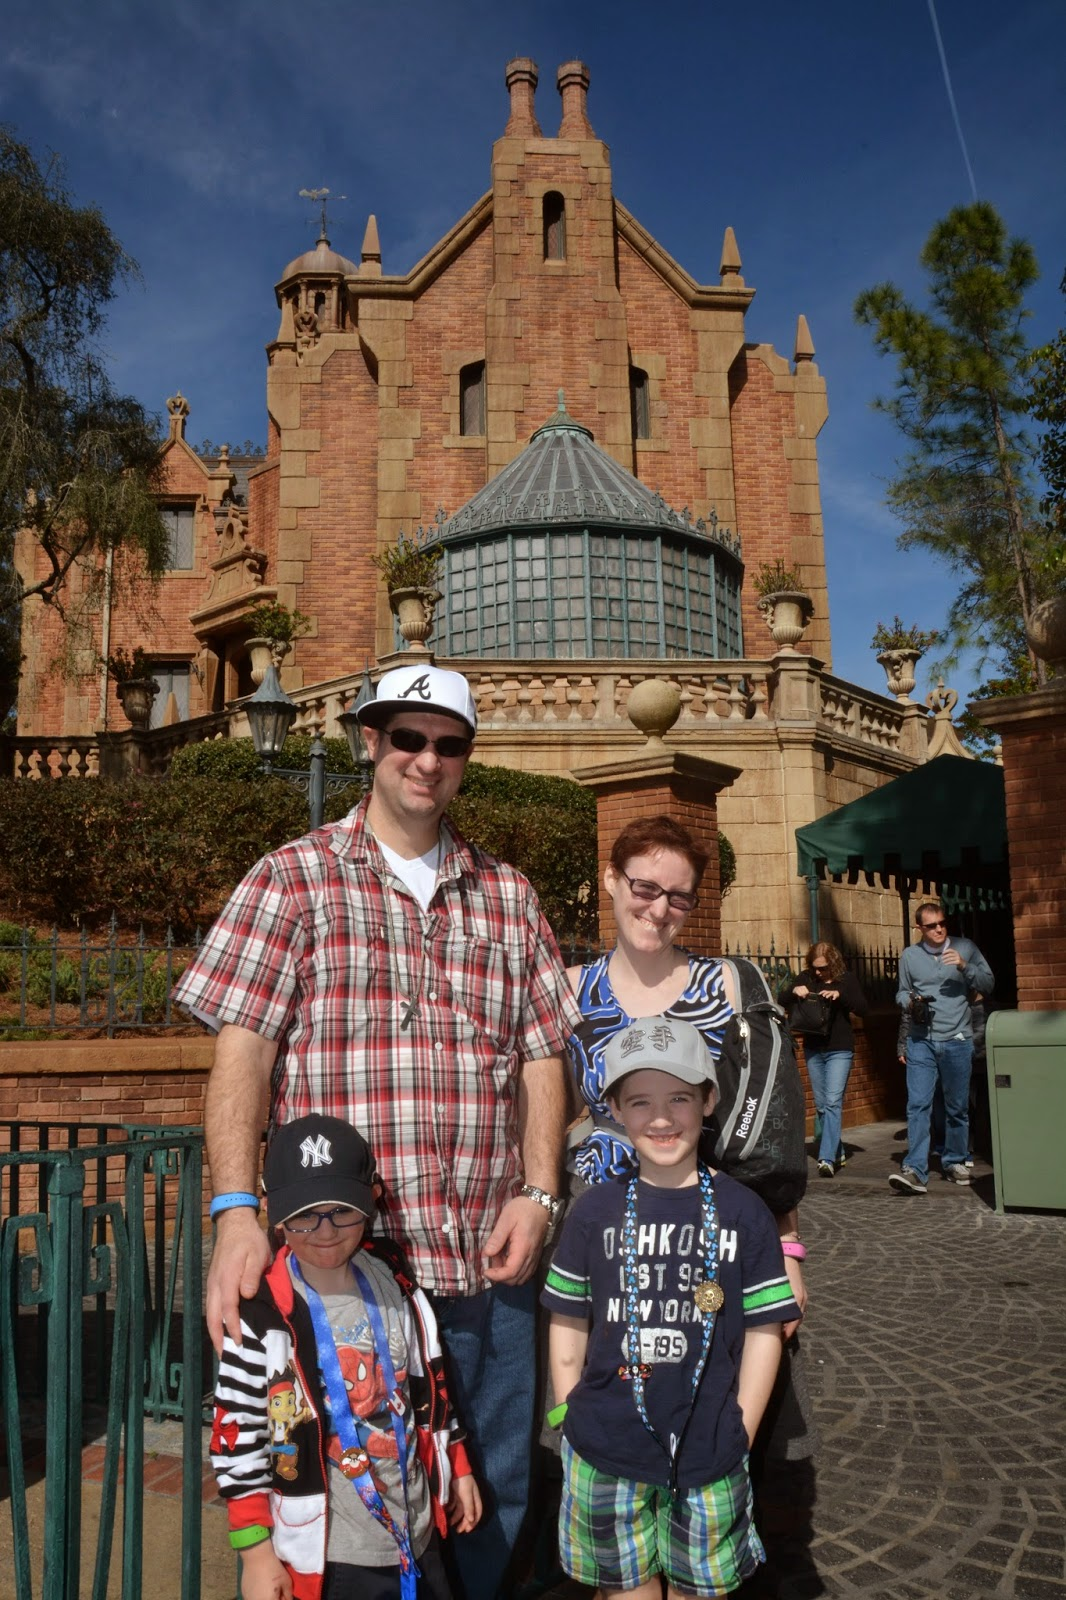 Disney, haunted mansion, orlando, magic kingdom, photopass, memory maker